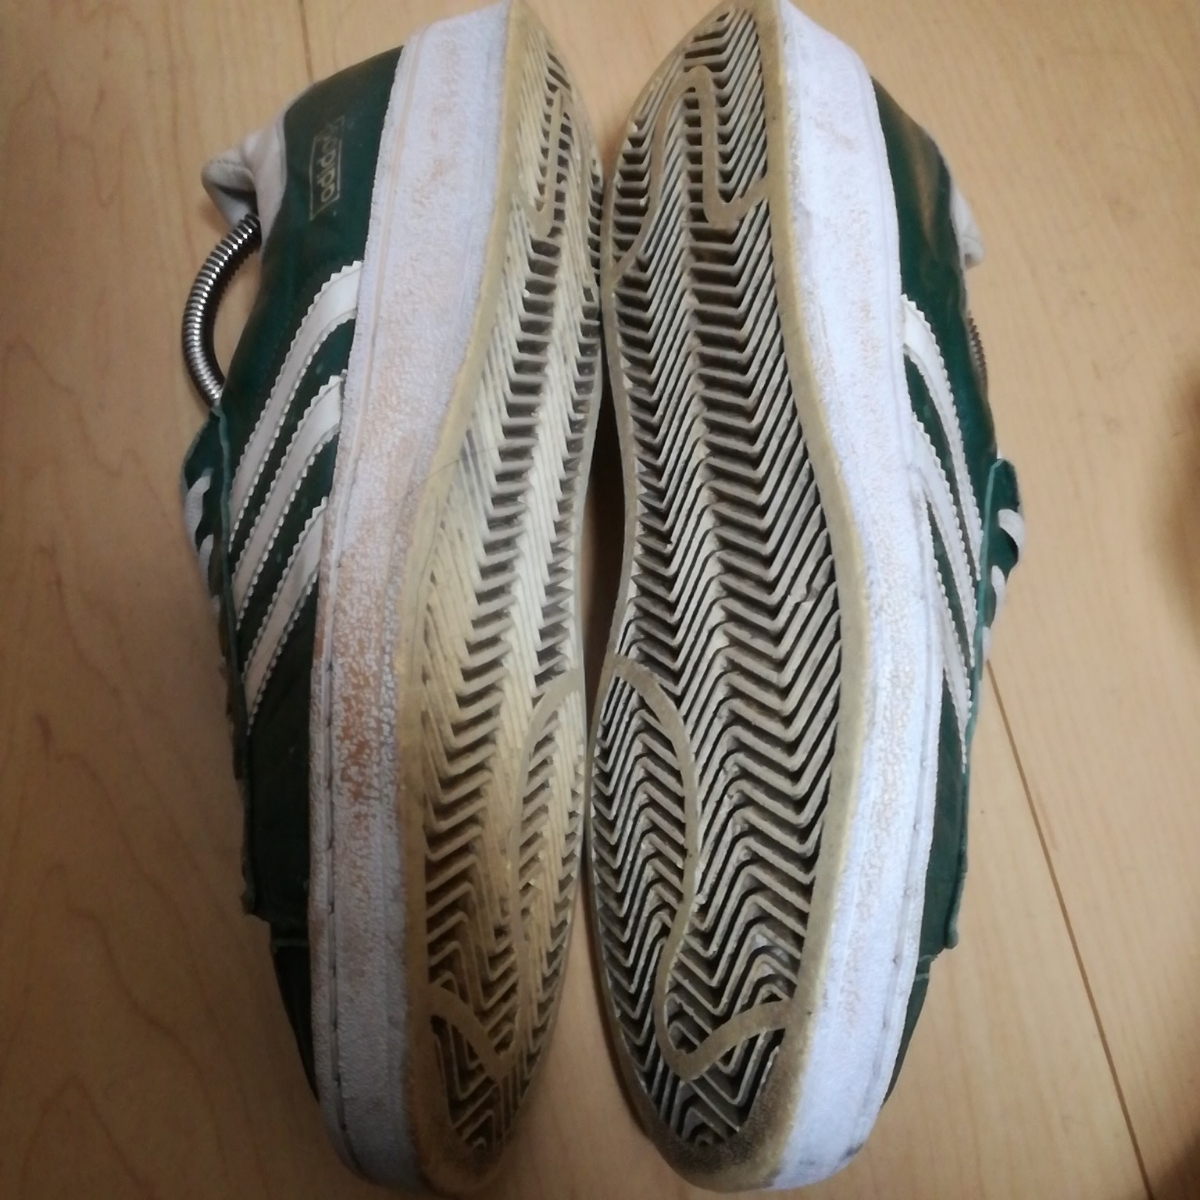 rare!90's made in Japan 97 year made Adidas adidas AC1870